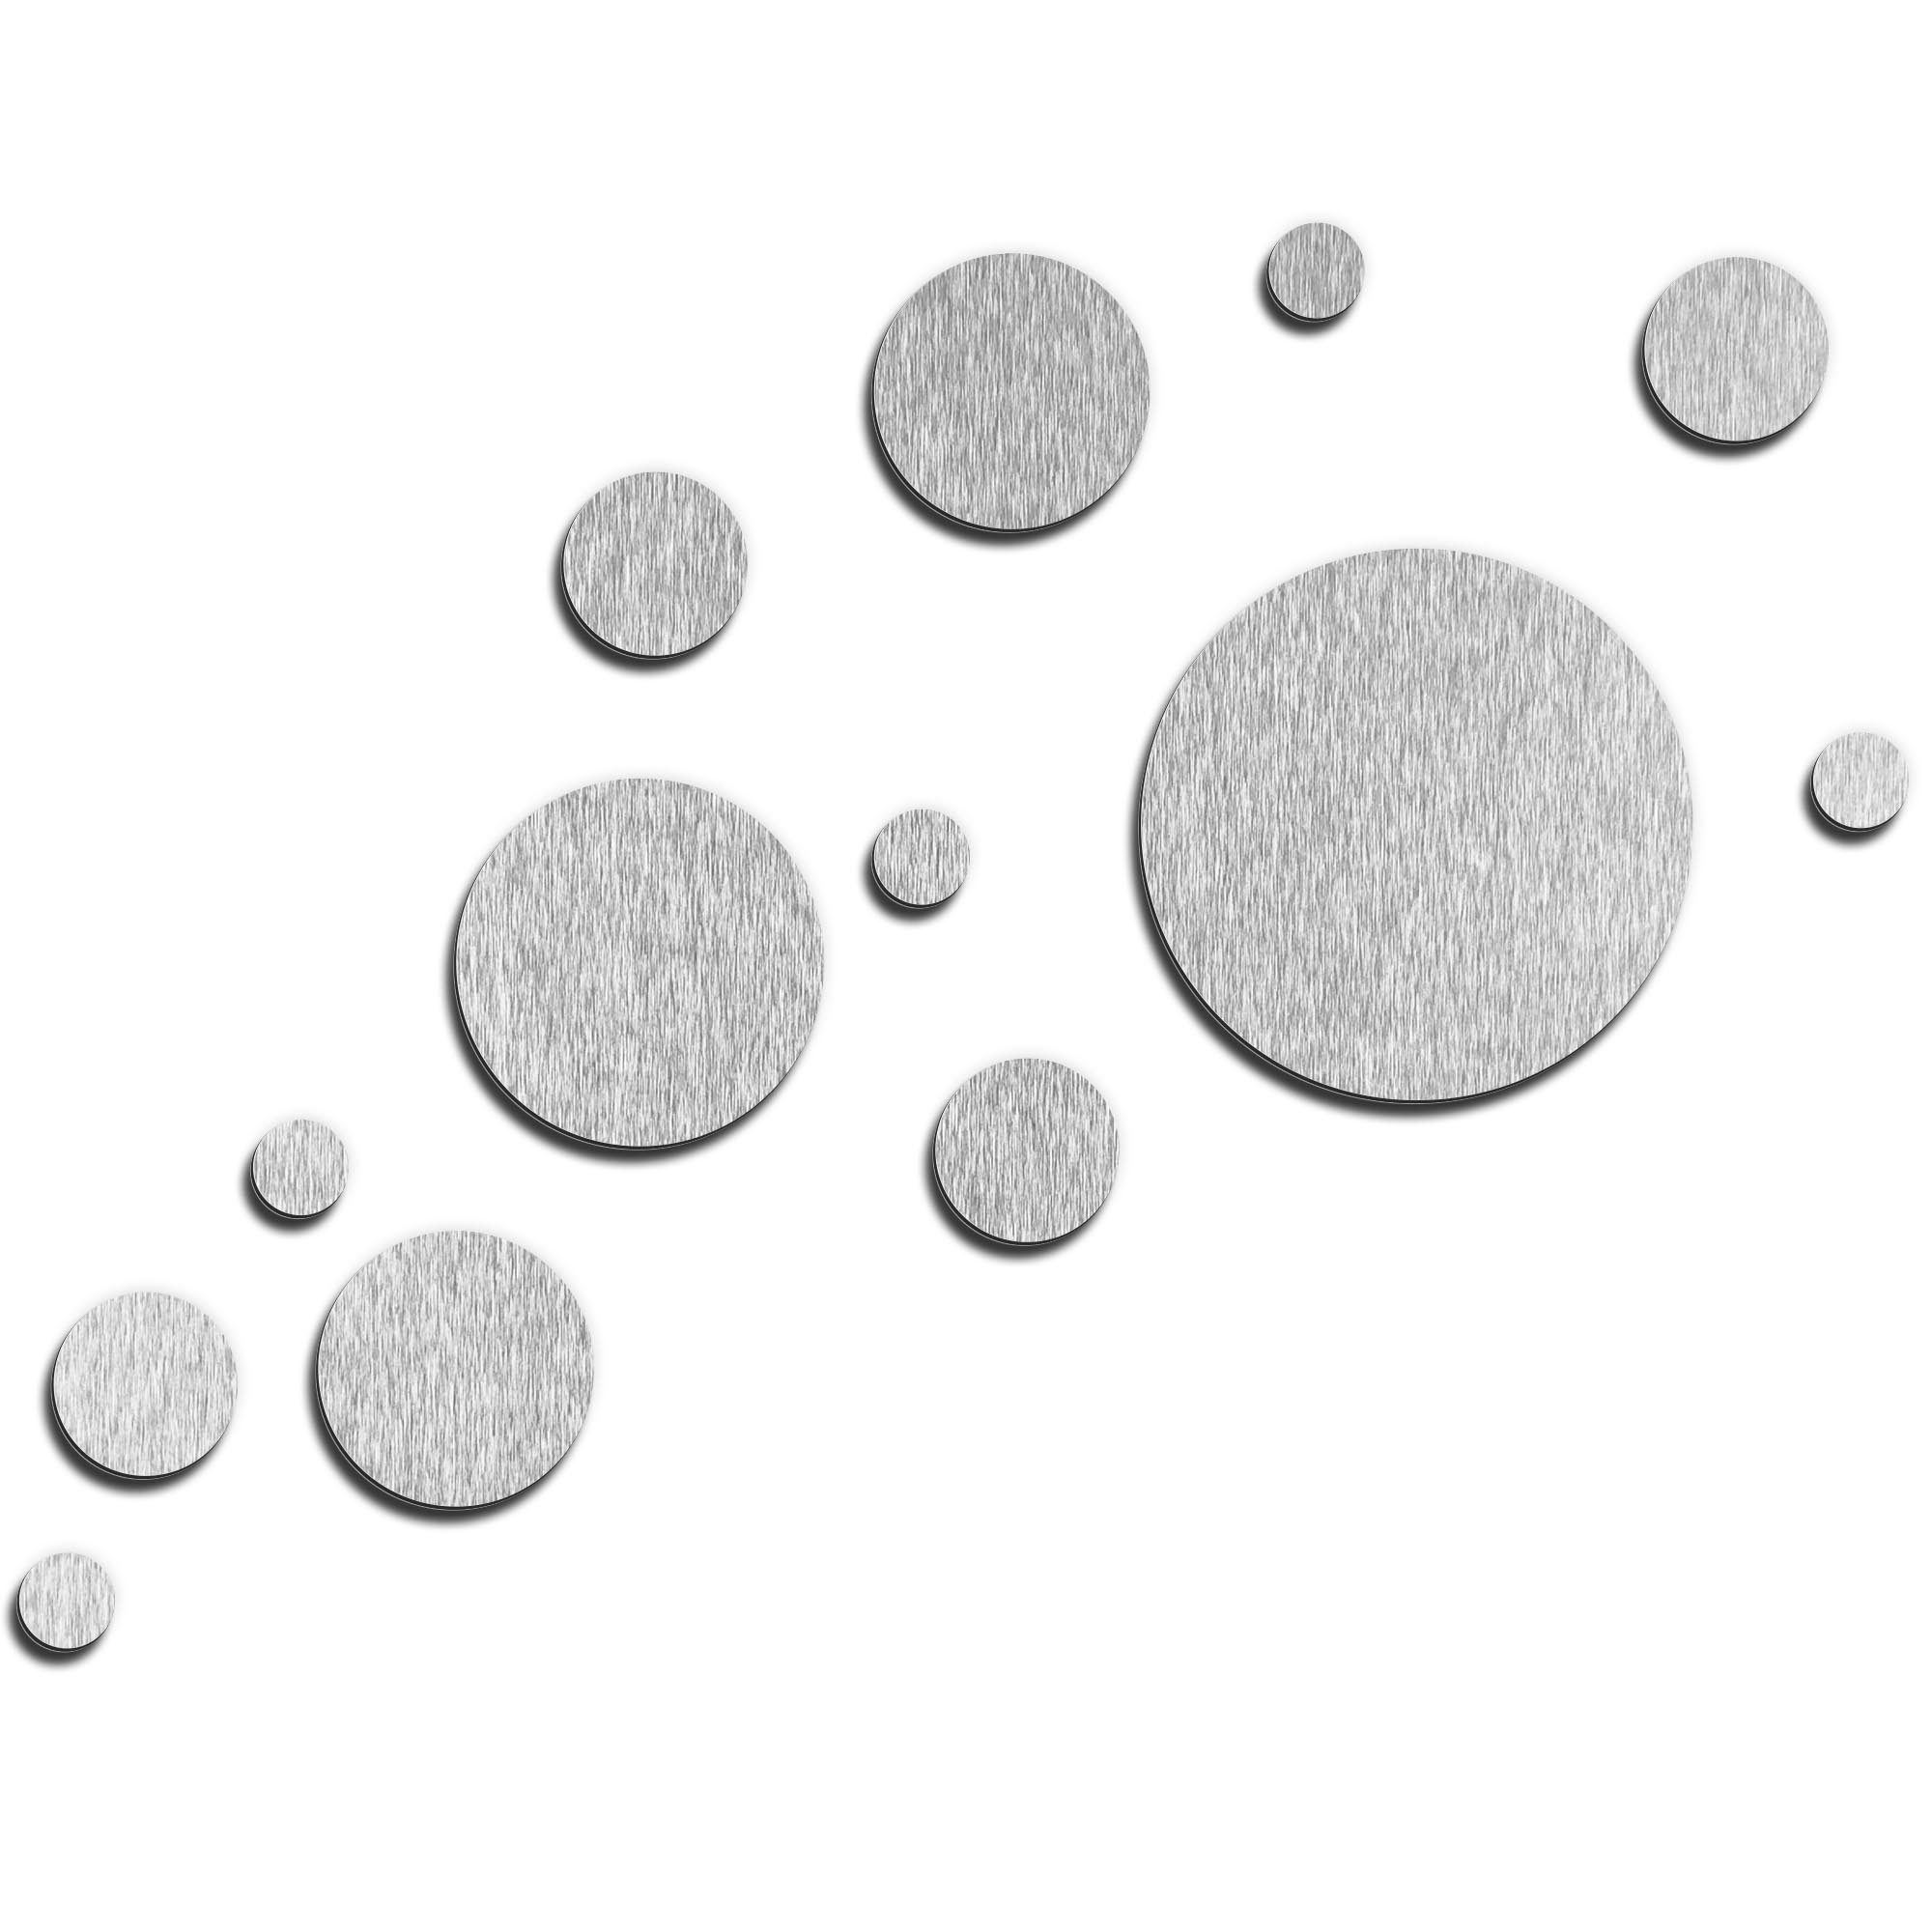 NAY 'Floating Silver' 66in x 50in Circles Abstract Art on Aluminum Composite